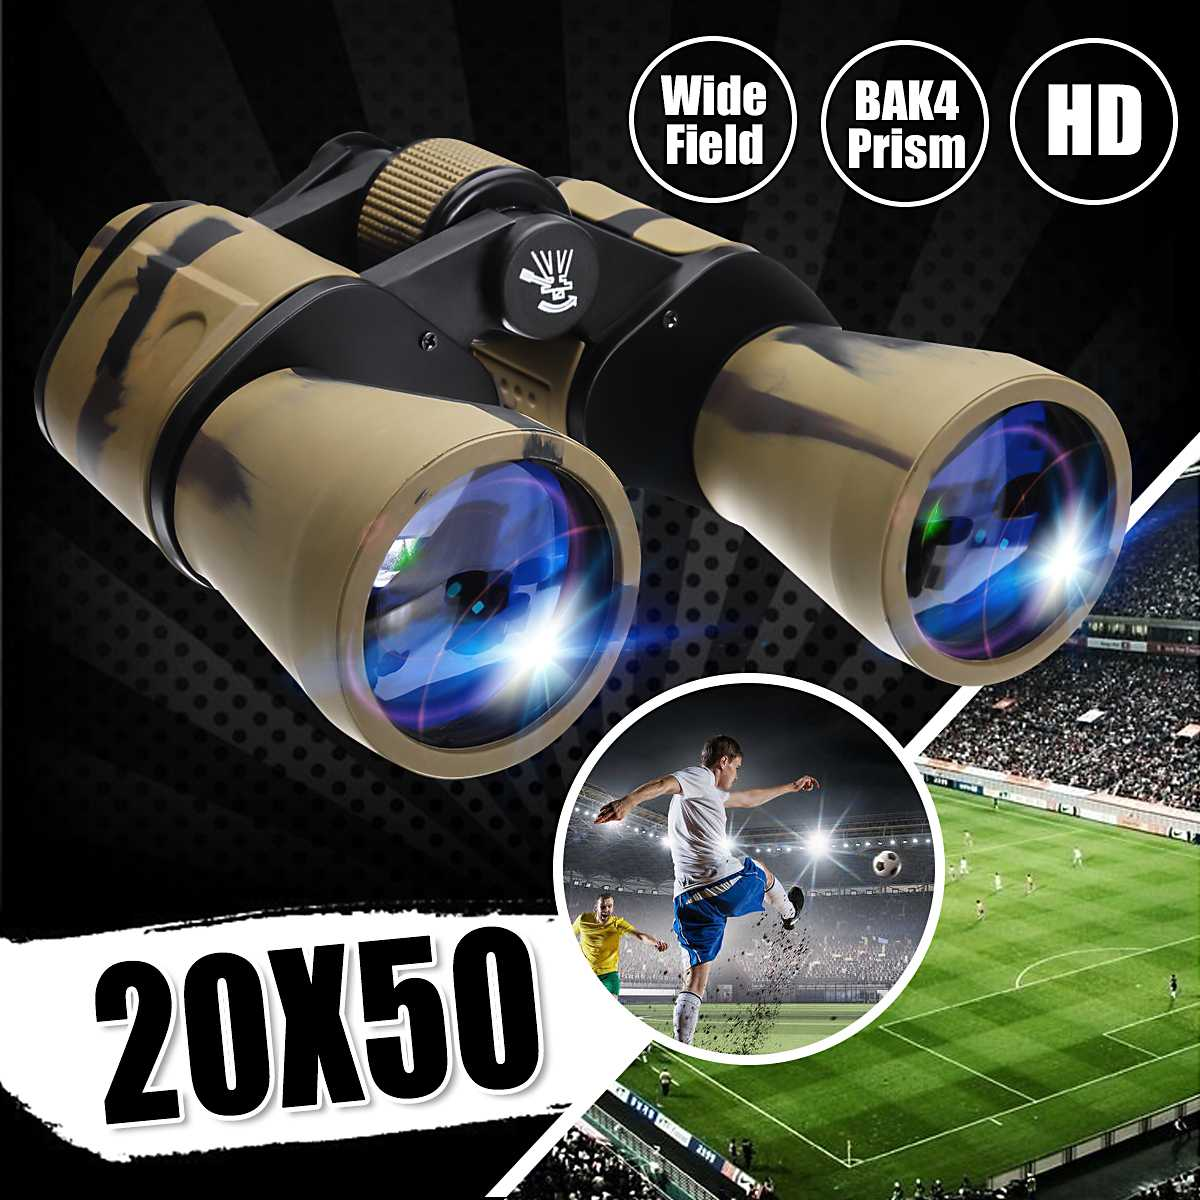 20x50 High Clarity Binoculars Powerful Military binocular For Outdoor Hunting Optical glass Hd Telescope low light Night Vision 1